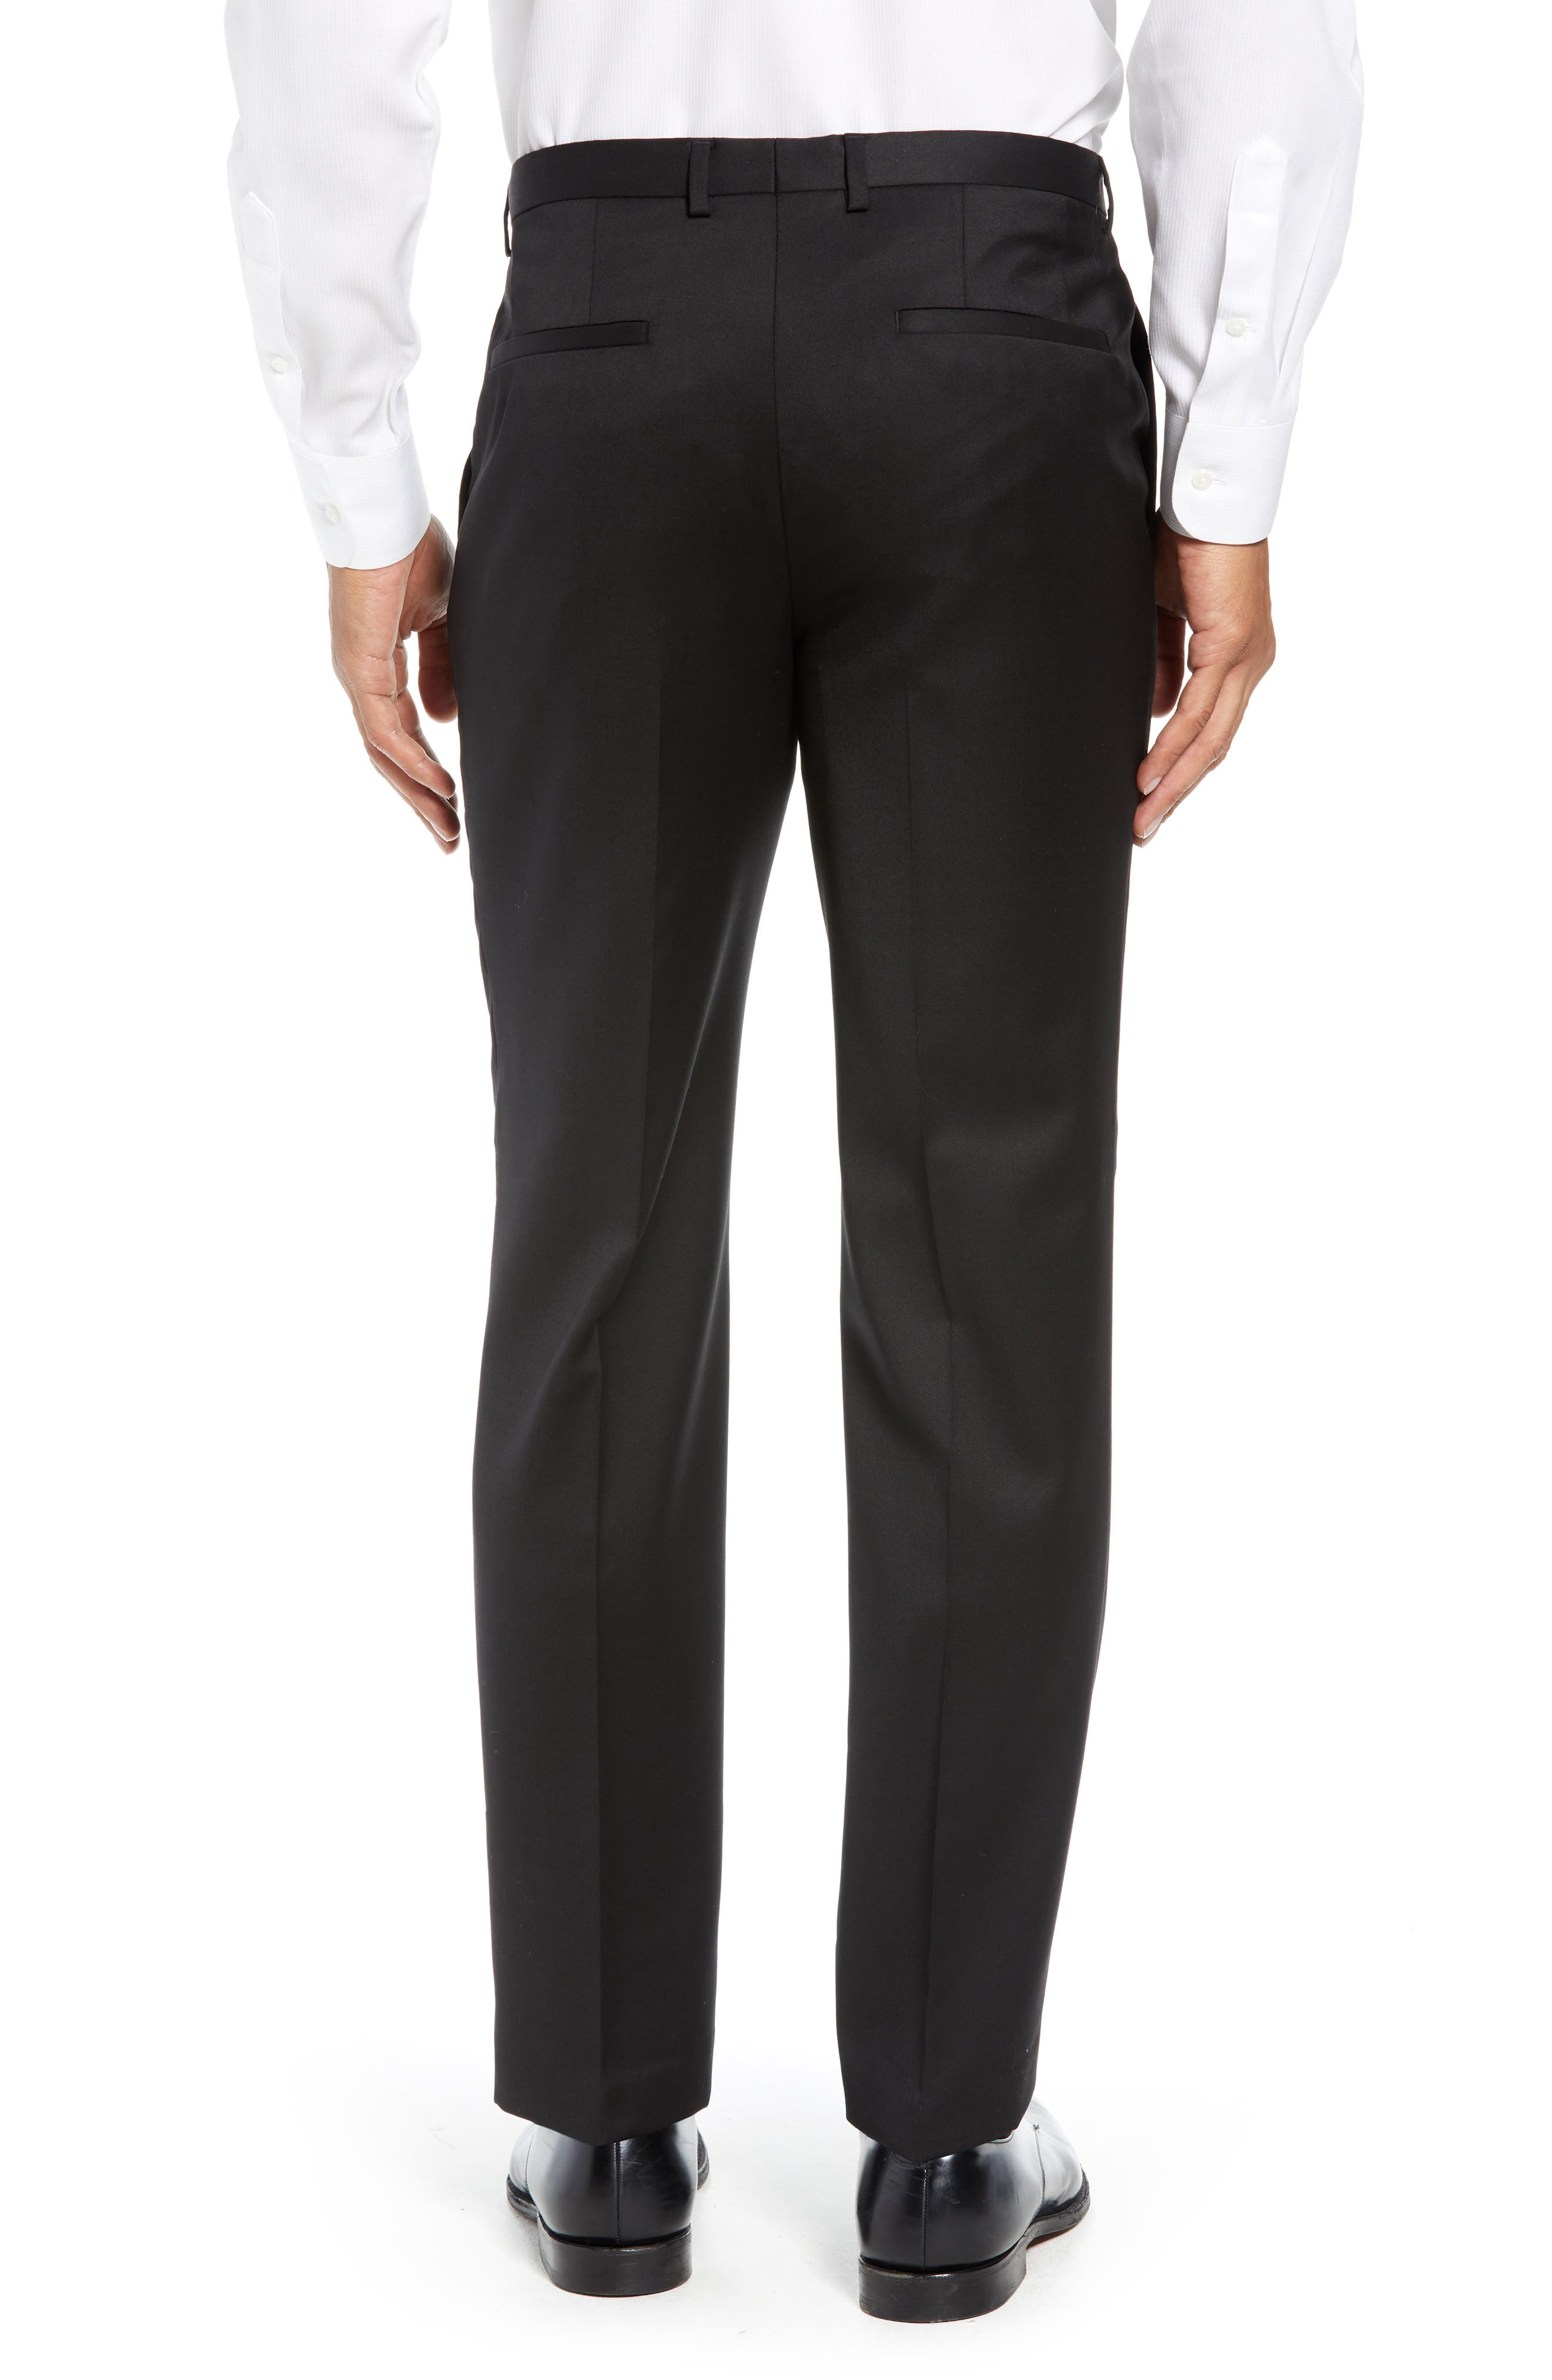 Hartley Extra Slim Trousers,                             Alternate thumbnail 2, color,                             001